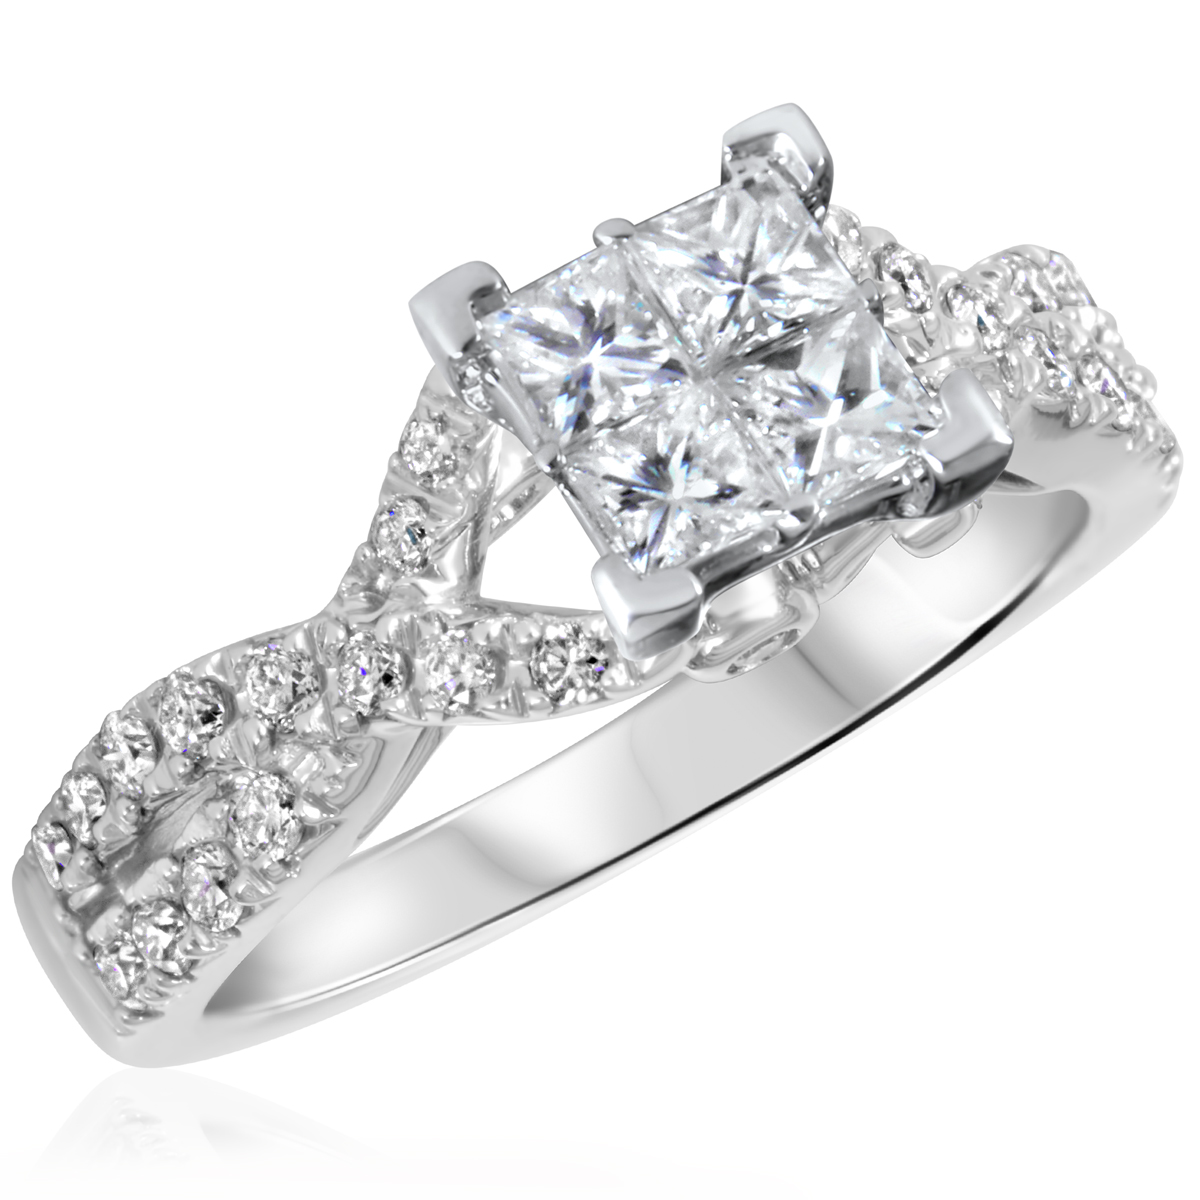 1 CT. T.W. Diamond Ladies Engagement Ring 14K White Gold- Size 8